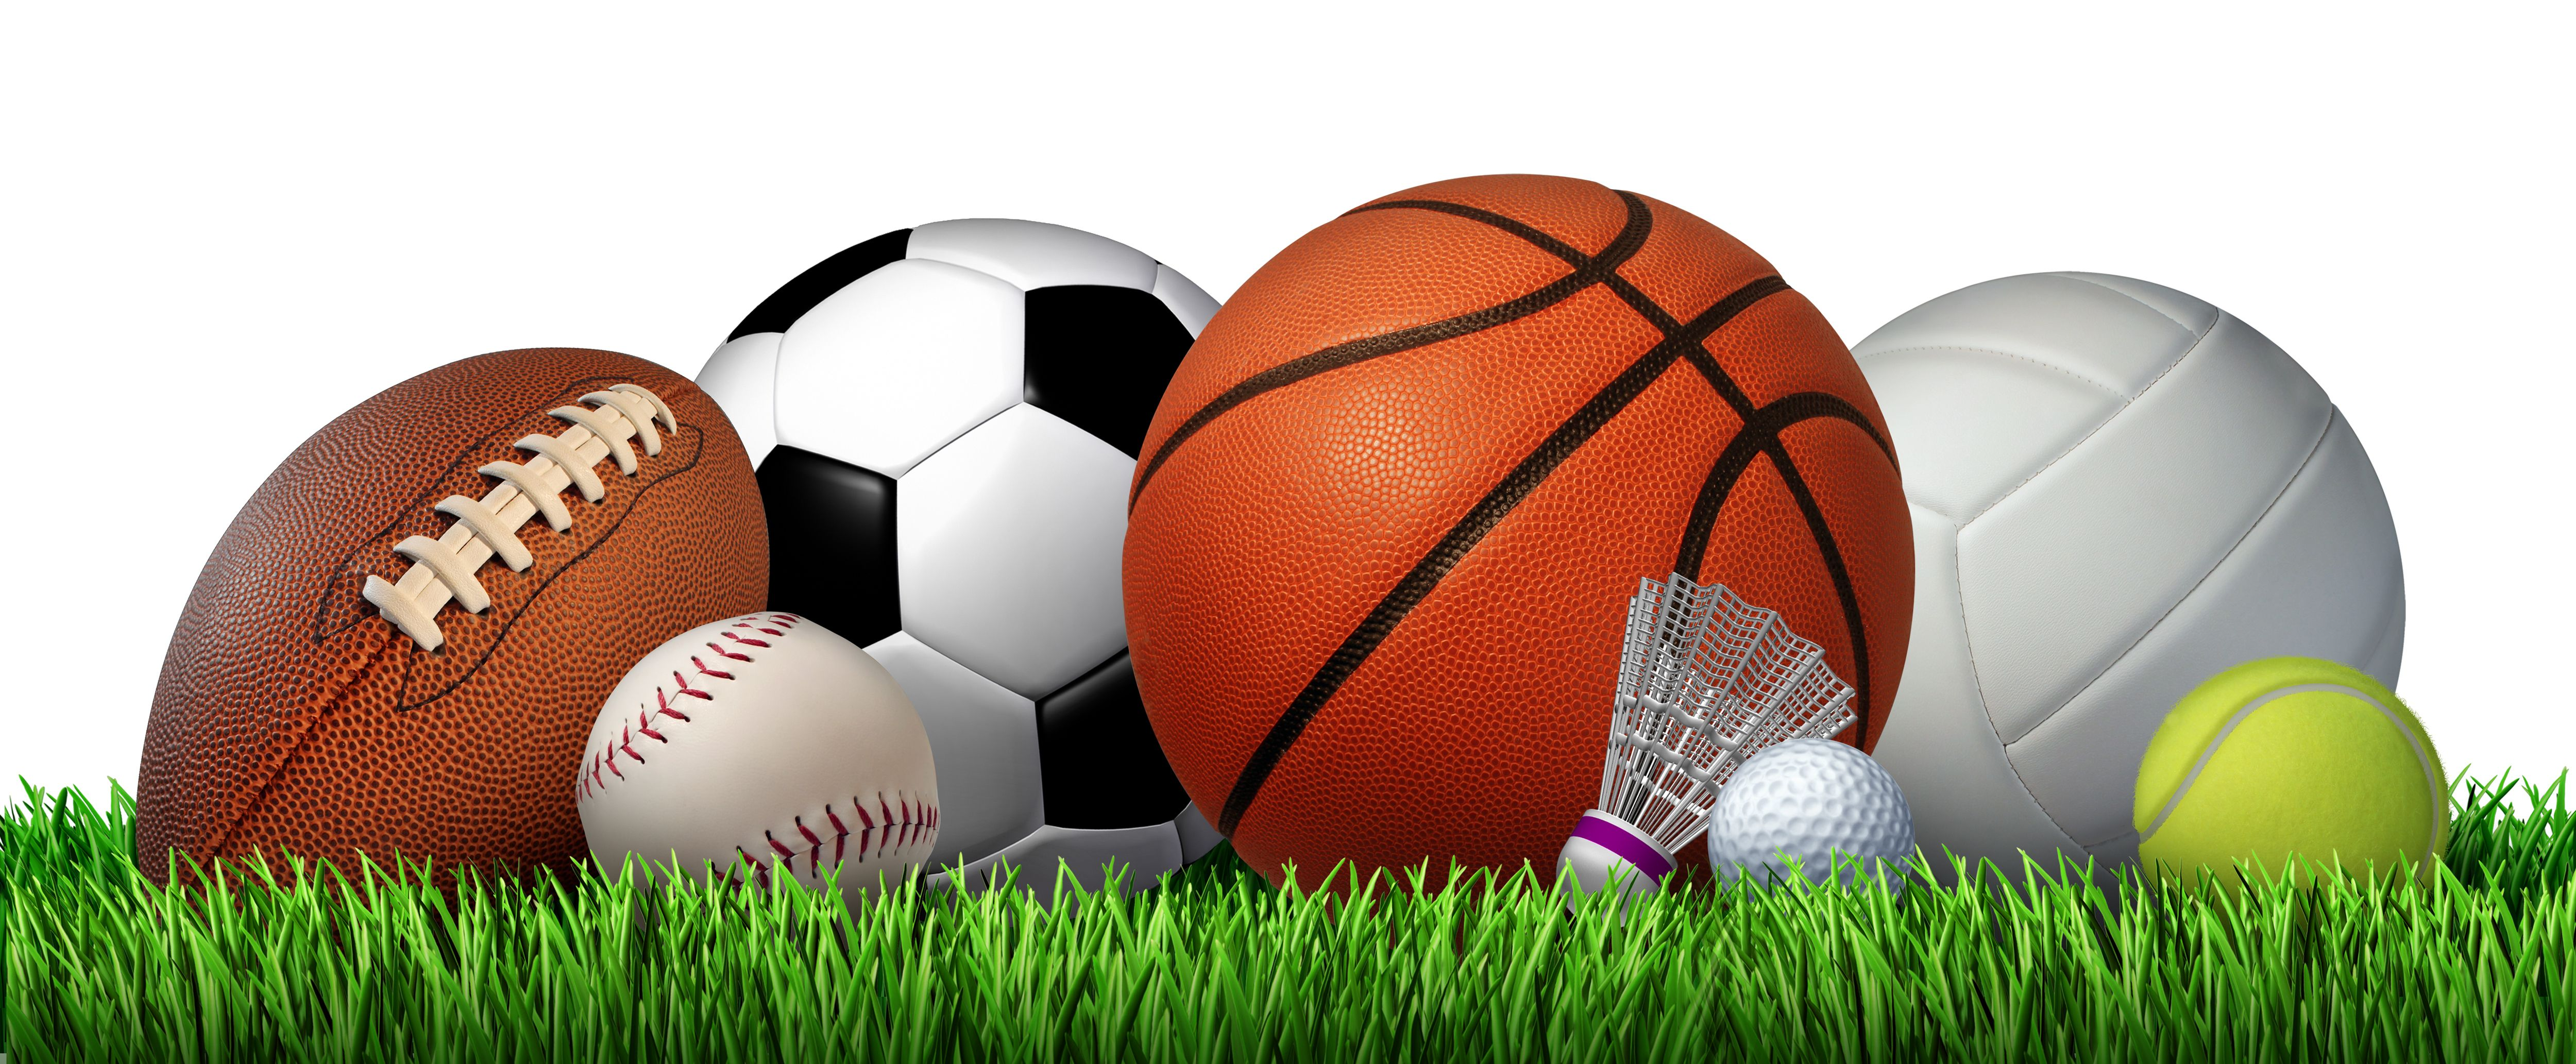 What Playing Sports Teaches Us Soccer Tennis Youth Sports Soccer